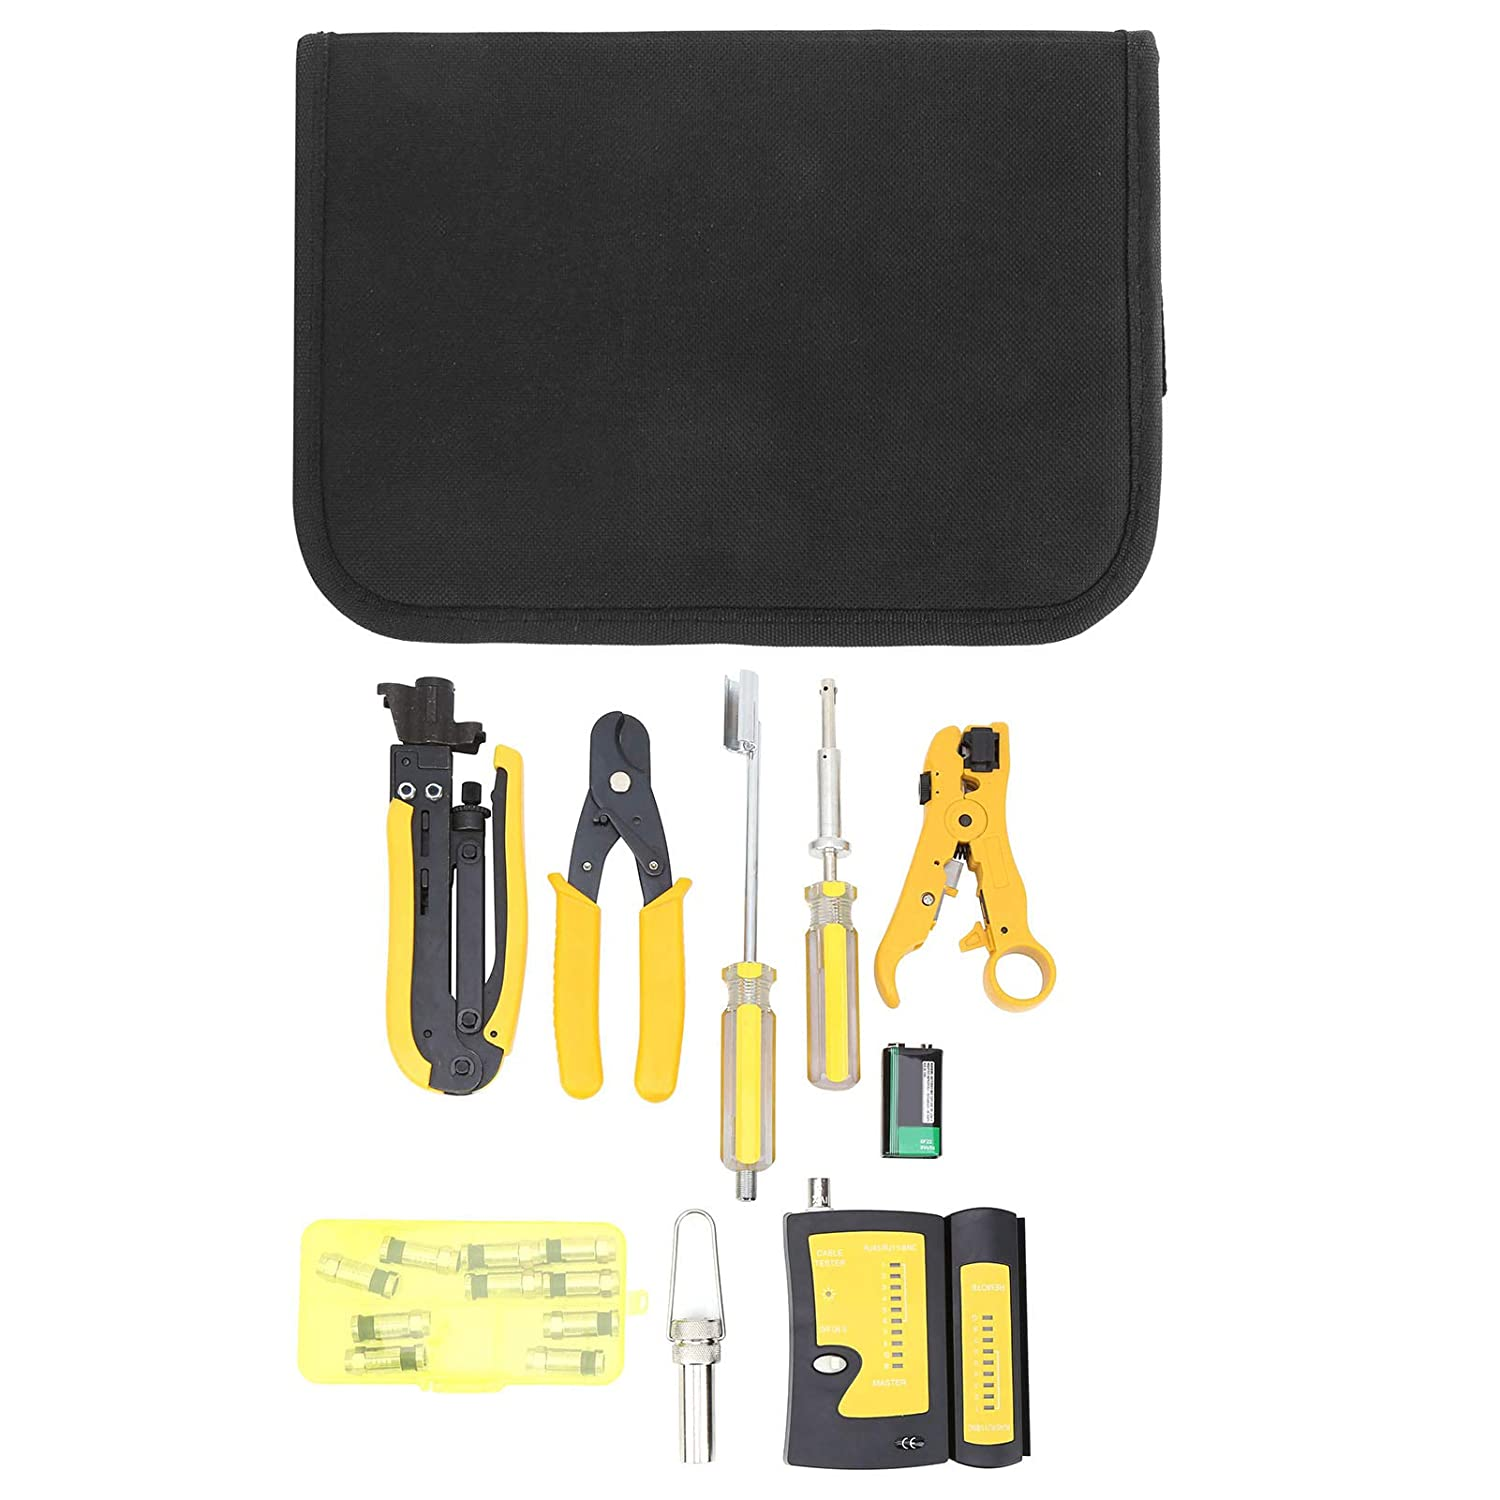 Coaxial F-Head Network Tools Trust Cable Multifunction Wire Kit 3-in-1 Popularity